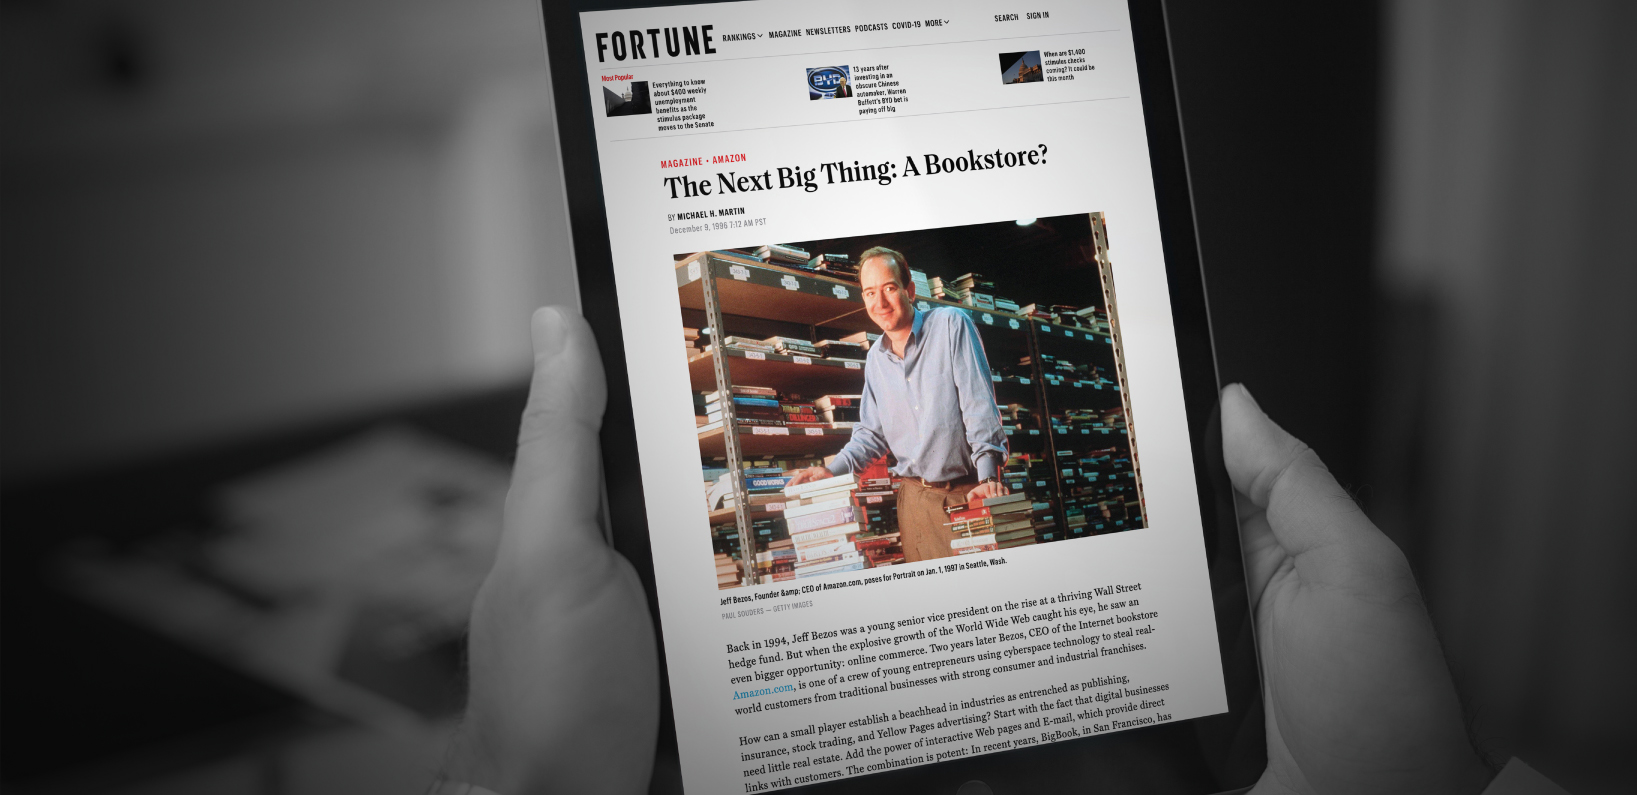 Fortune: The Next Big Thing: A Bookstore?